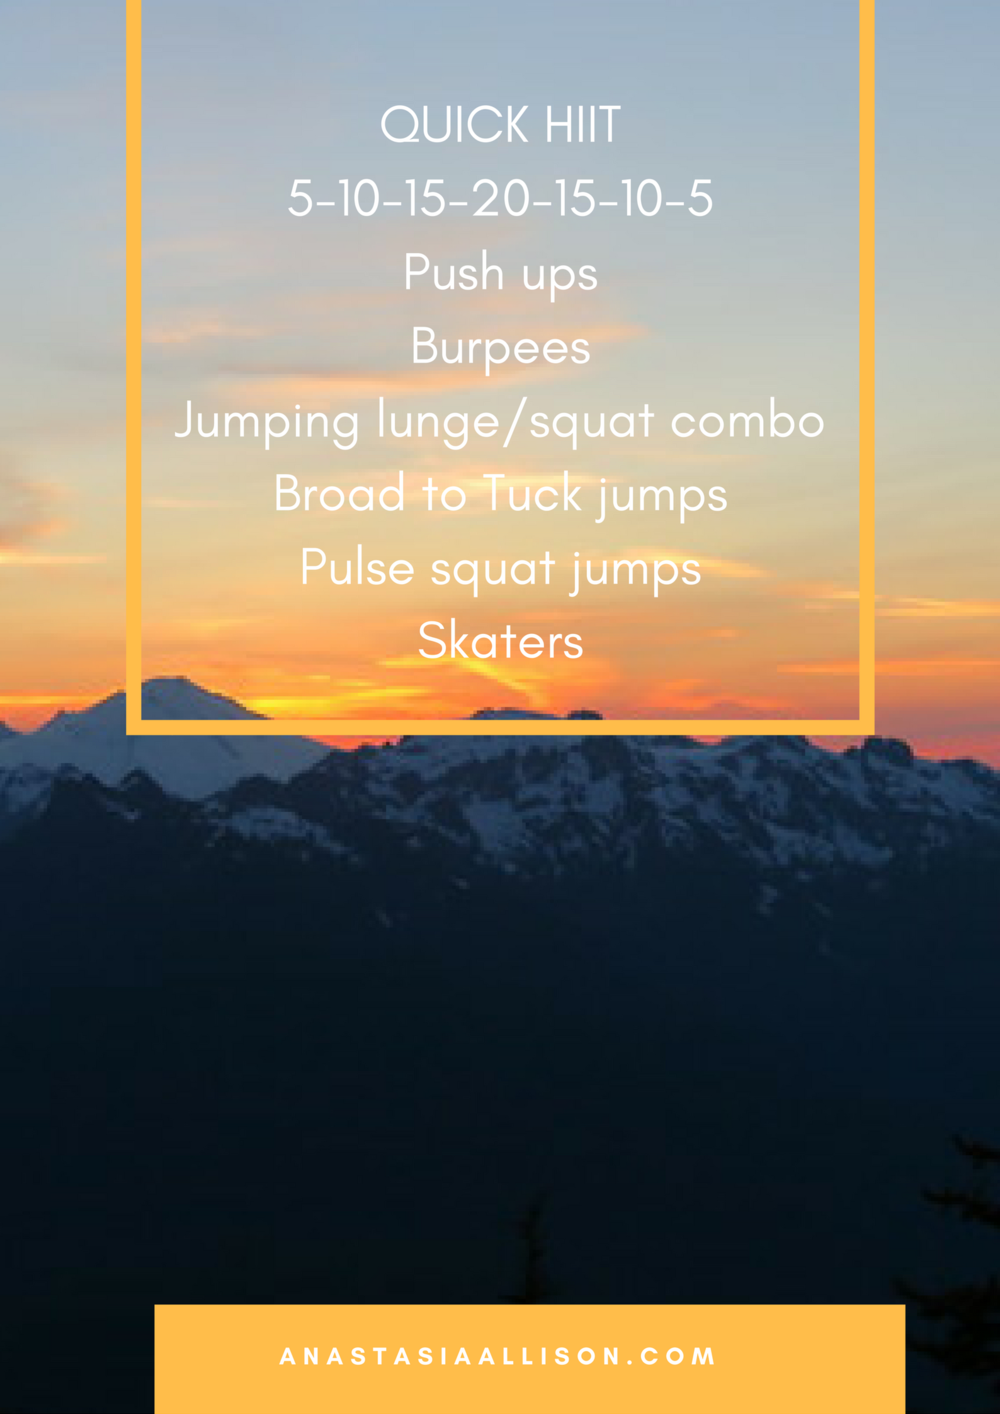 QUICK HIIT